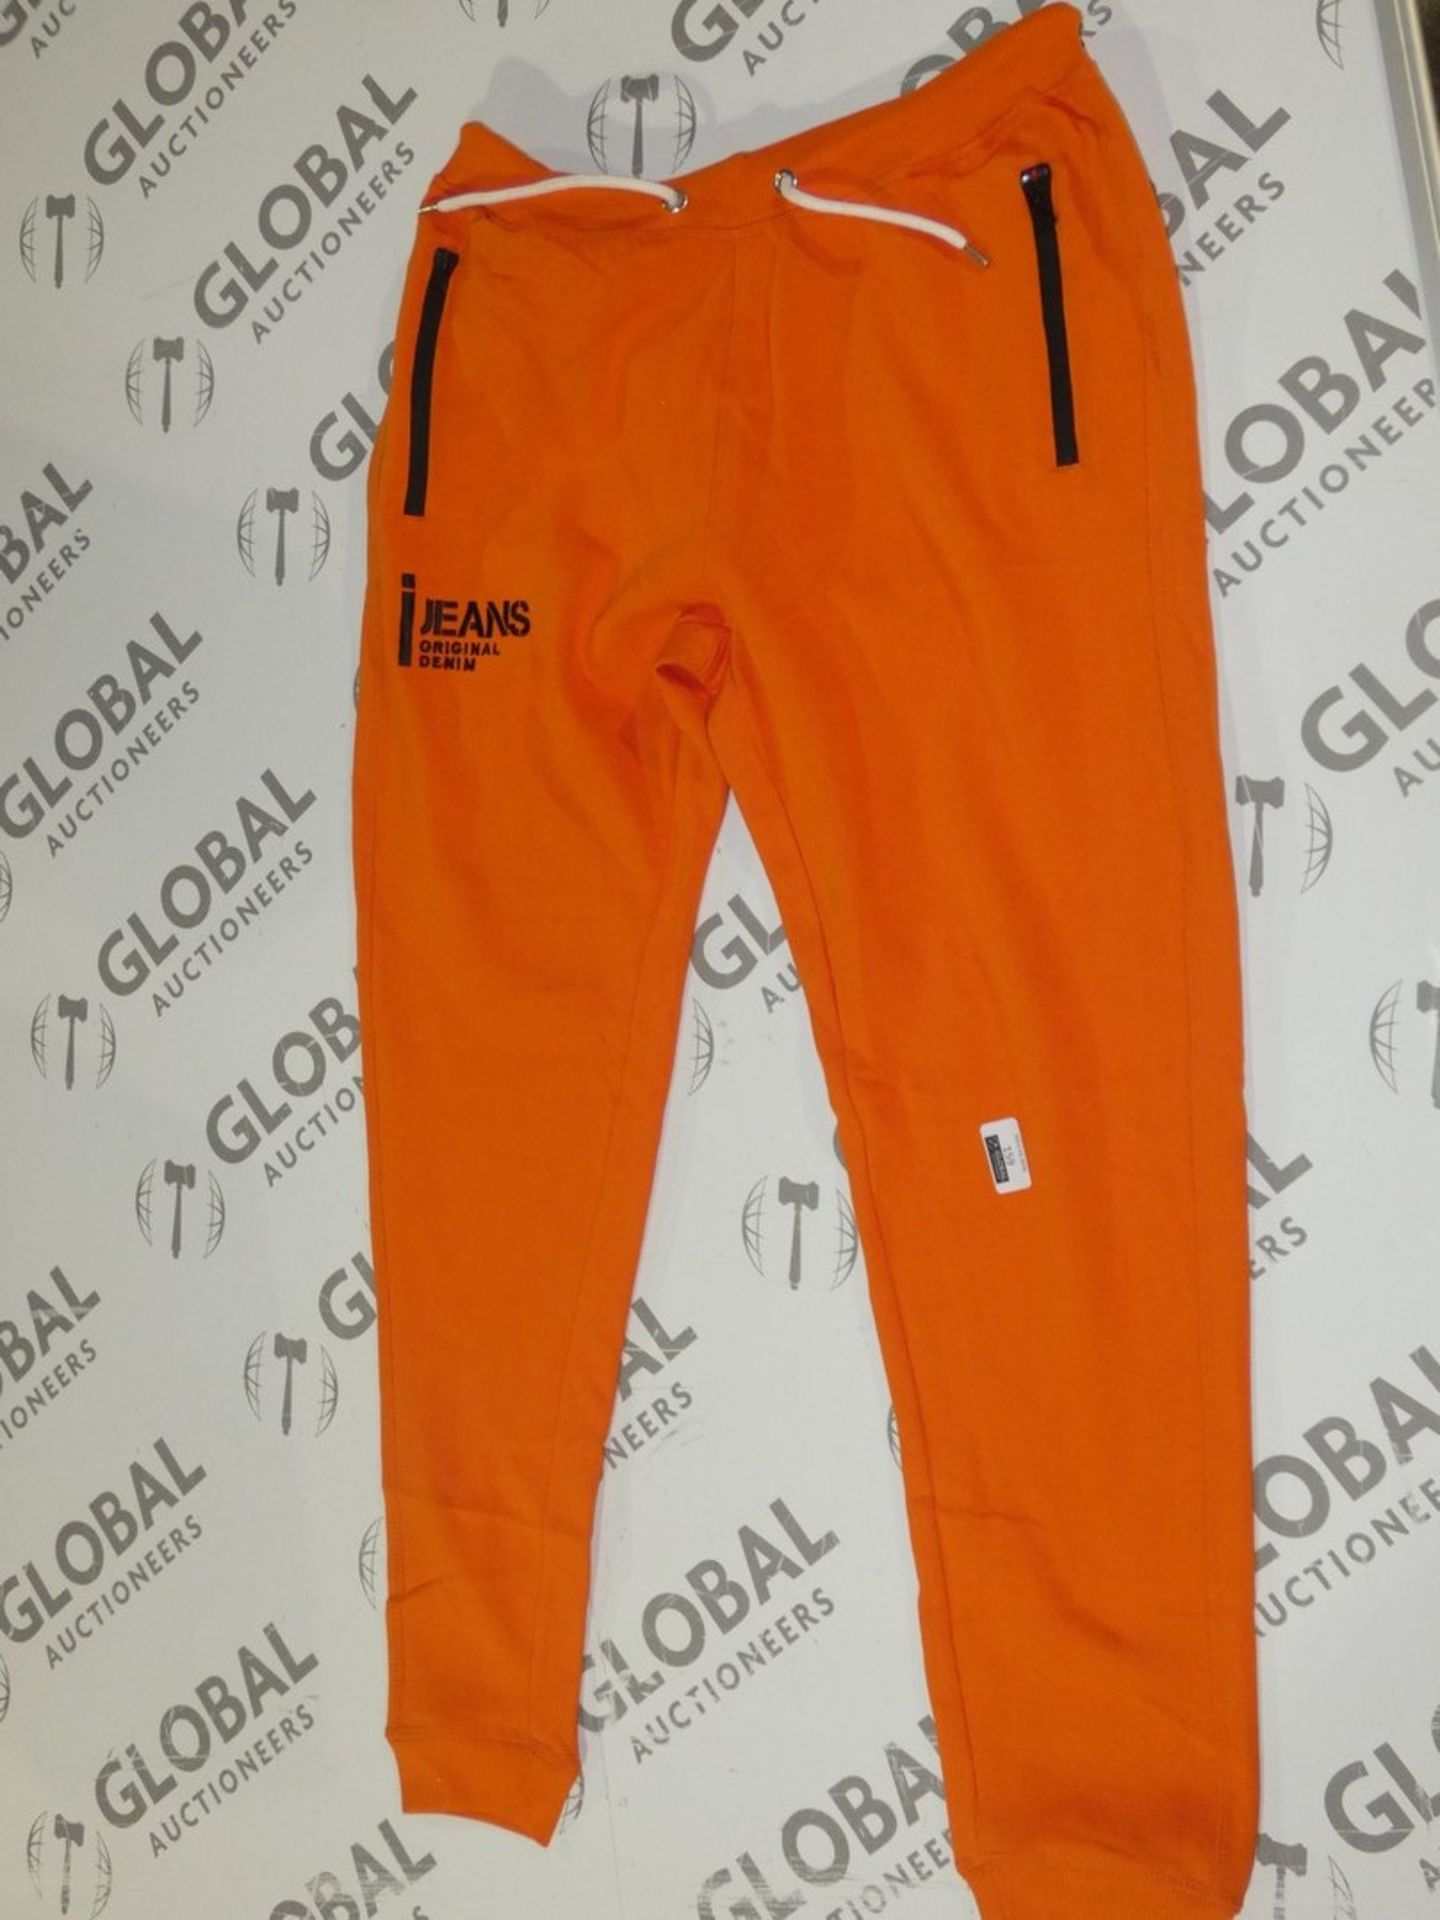 Lot 163 - Assorted Brand New Pairs Of Ijeans Original Denim Orange Lounging Pants In Assorted Sizes RRP £25